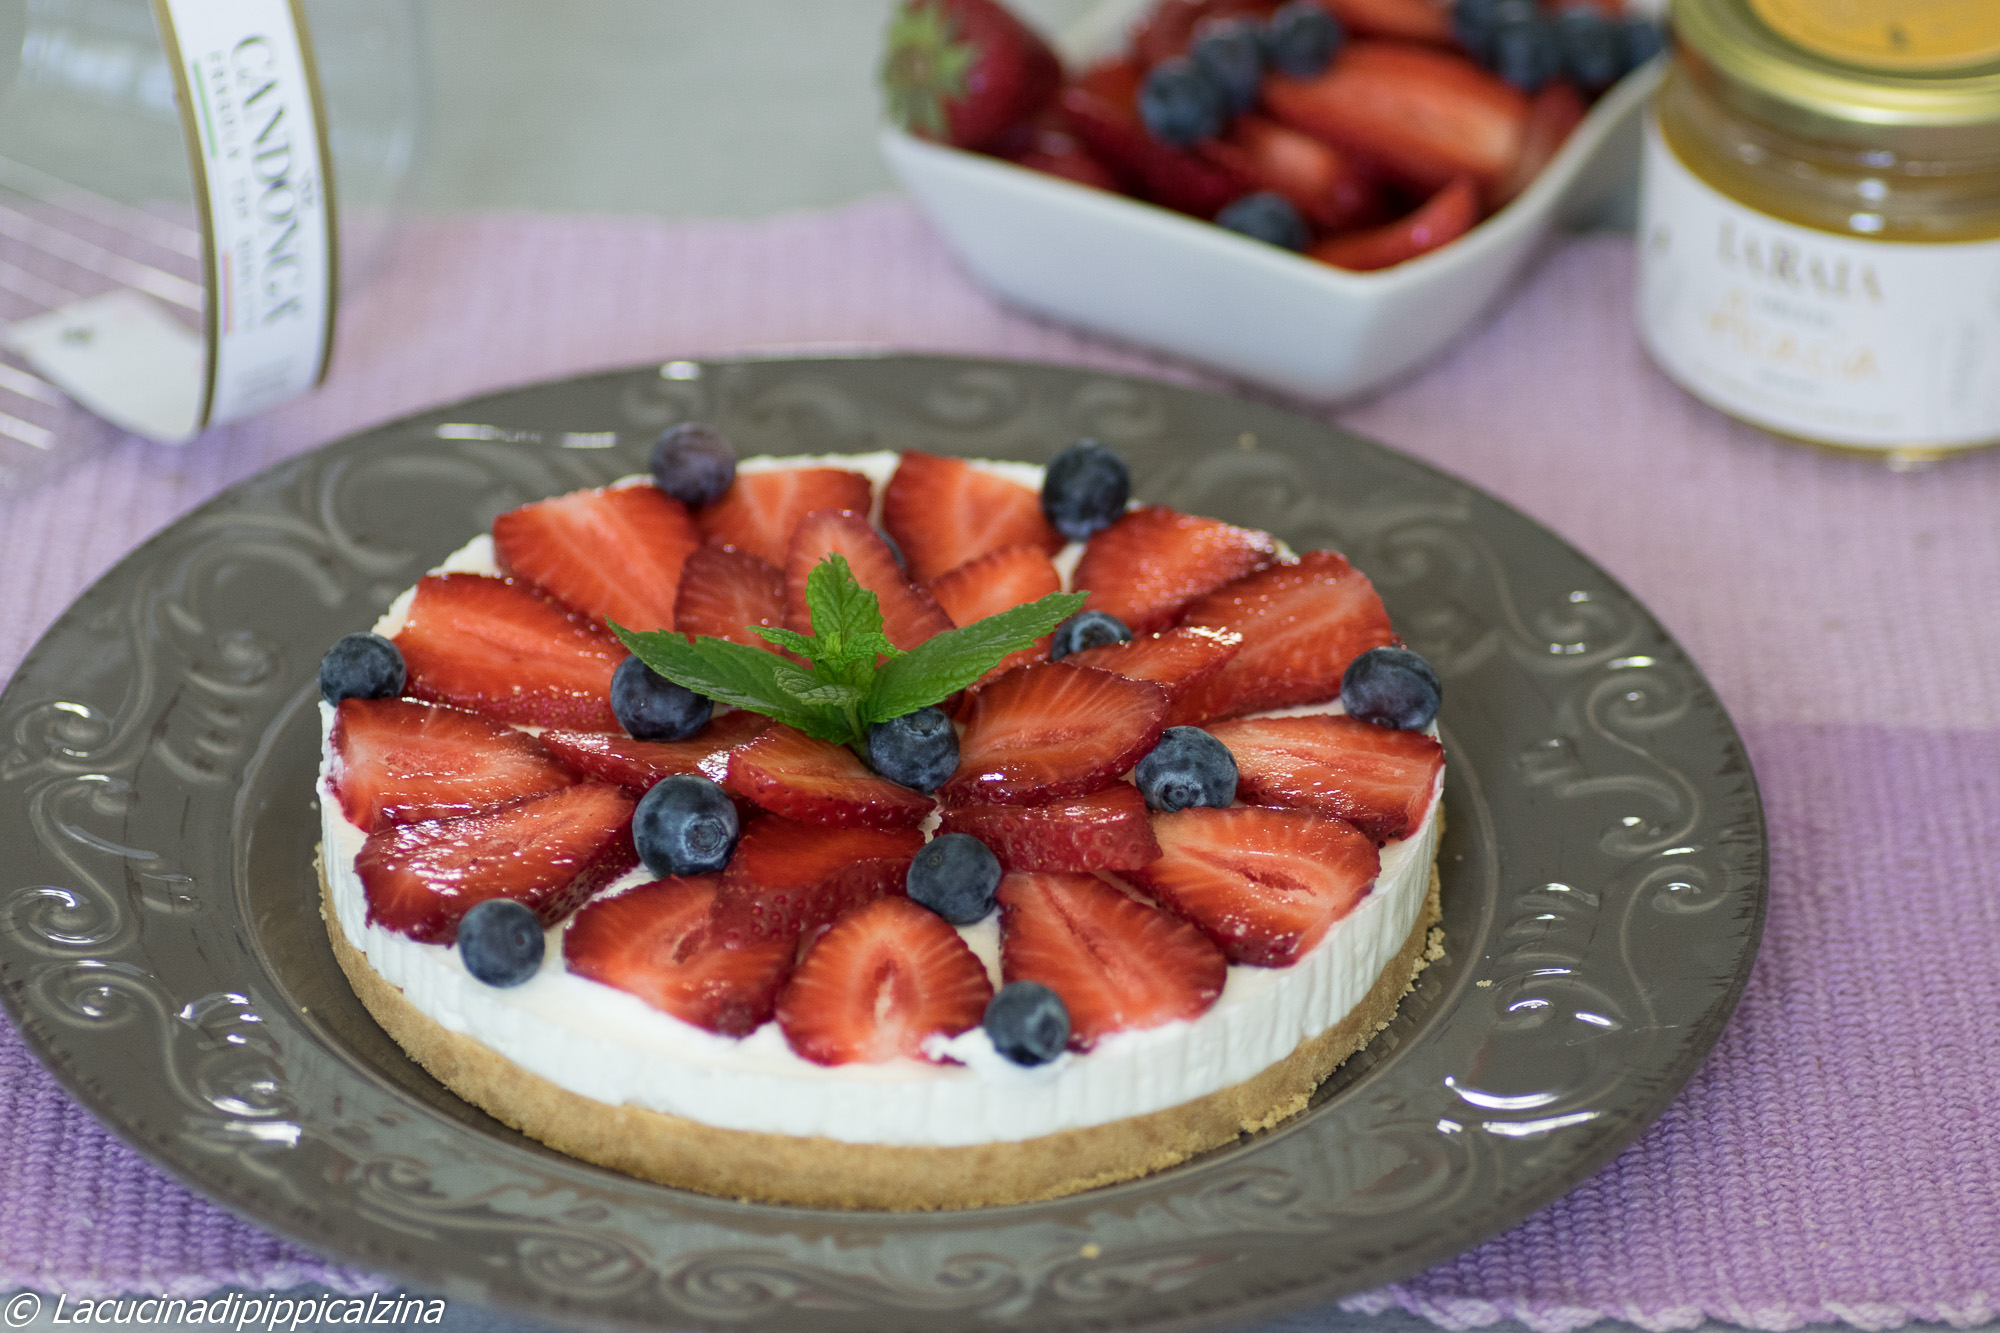 Cheesecake fragole e mirtilli,senza cottura